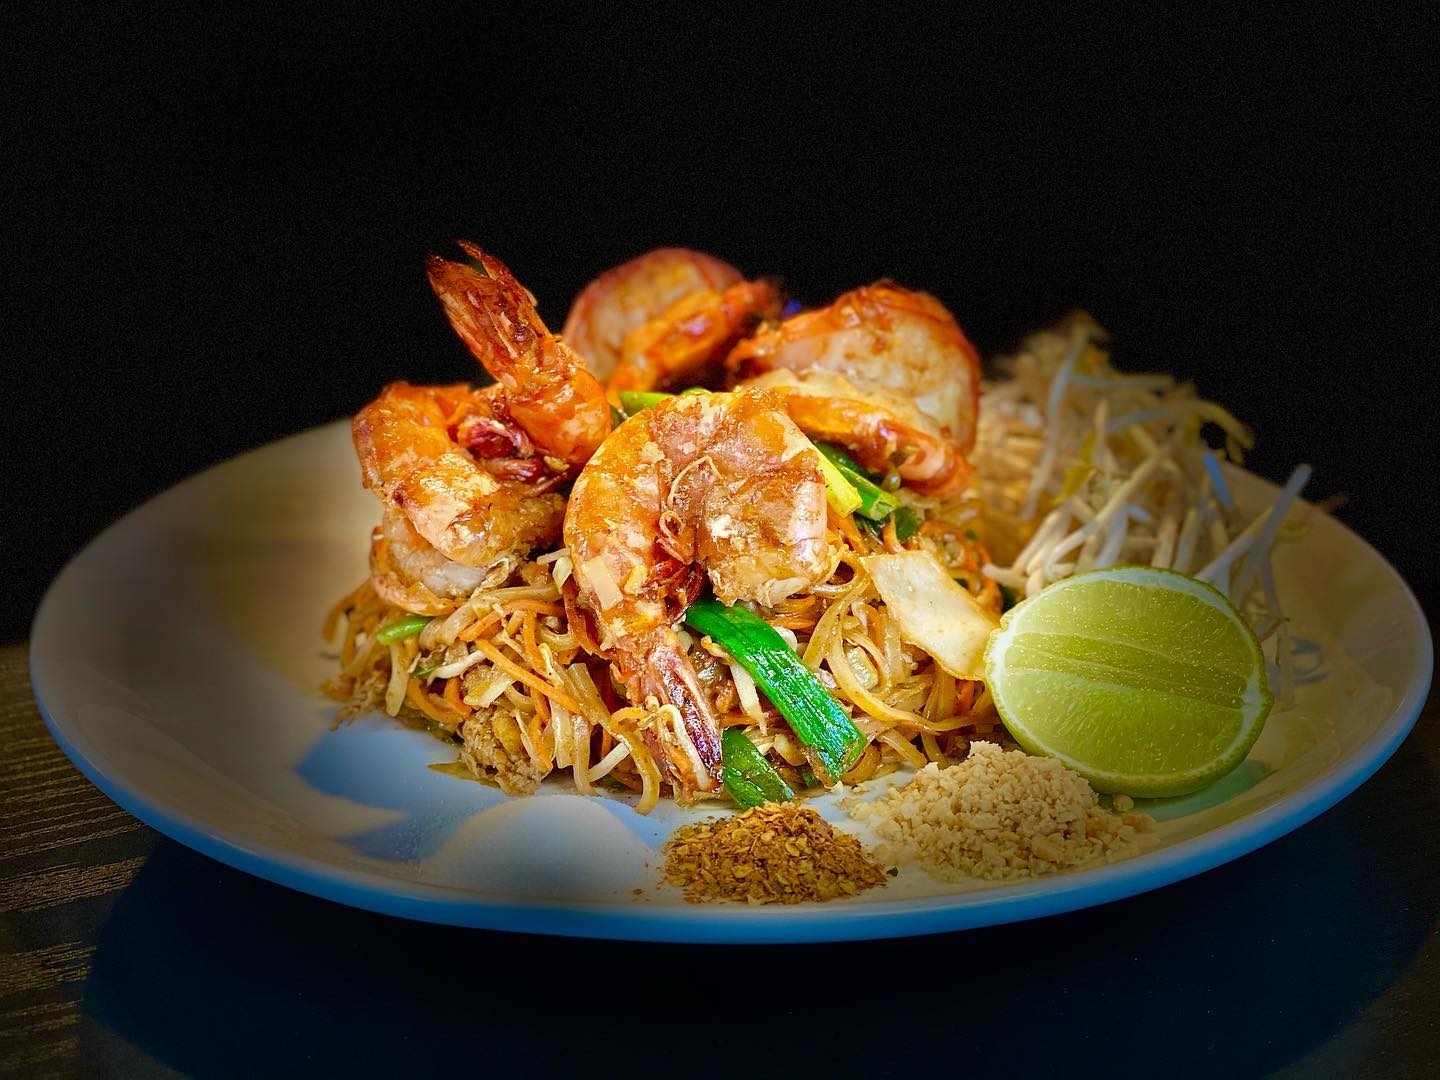 Siam Noodles and Food